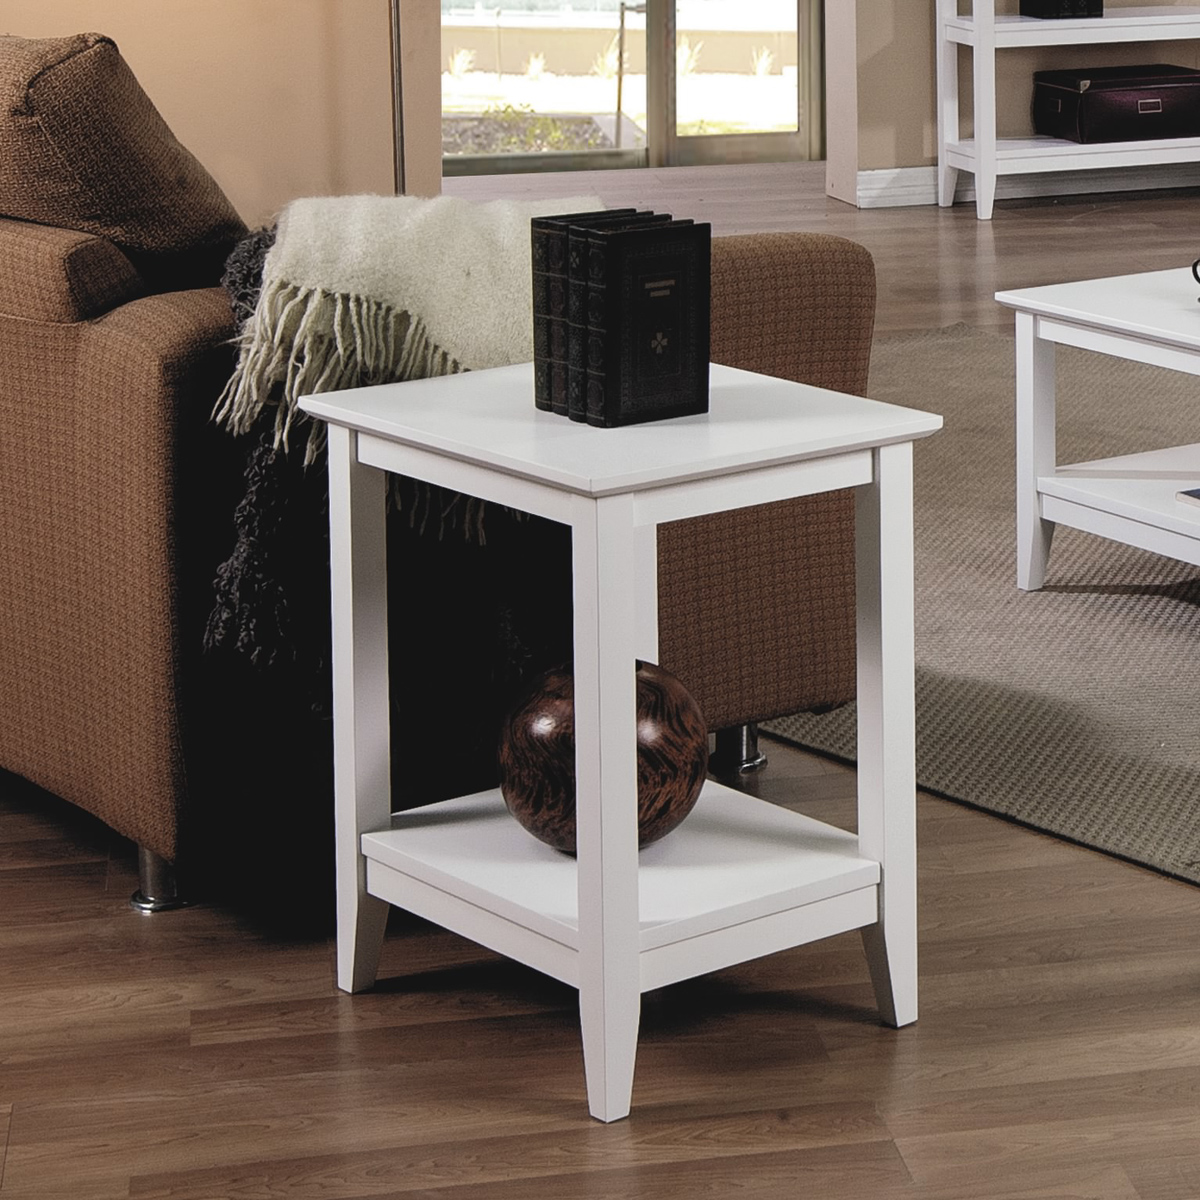 solid wood accent tables round table quadra end white crate and barrel teton outdoor furniture seat covers hot pink side bench contemporary lights room essentials mixed material